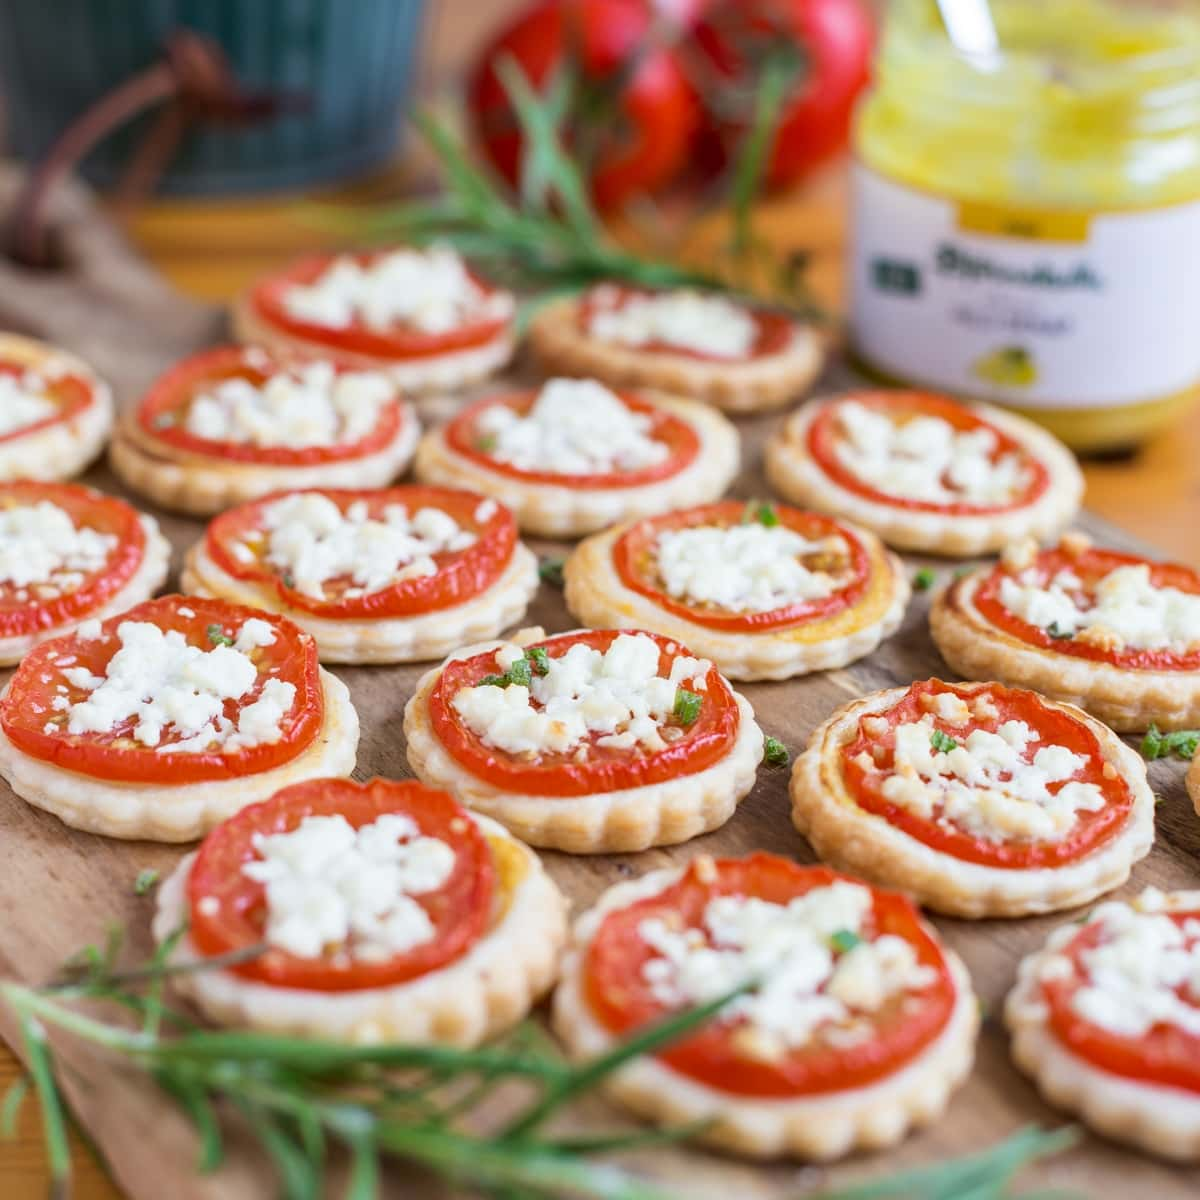 Tomato mustard mini tarts, ingredients in the background.